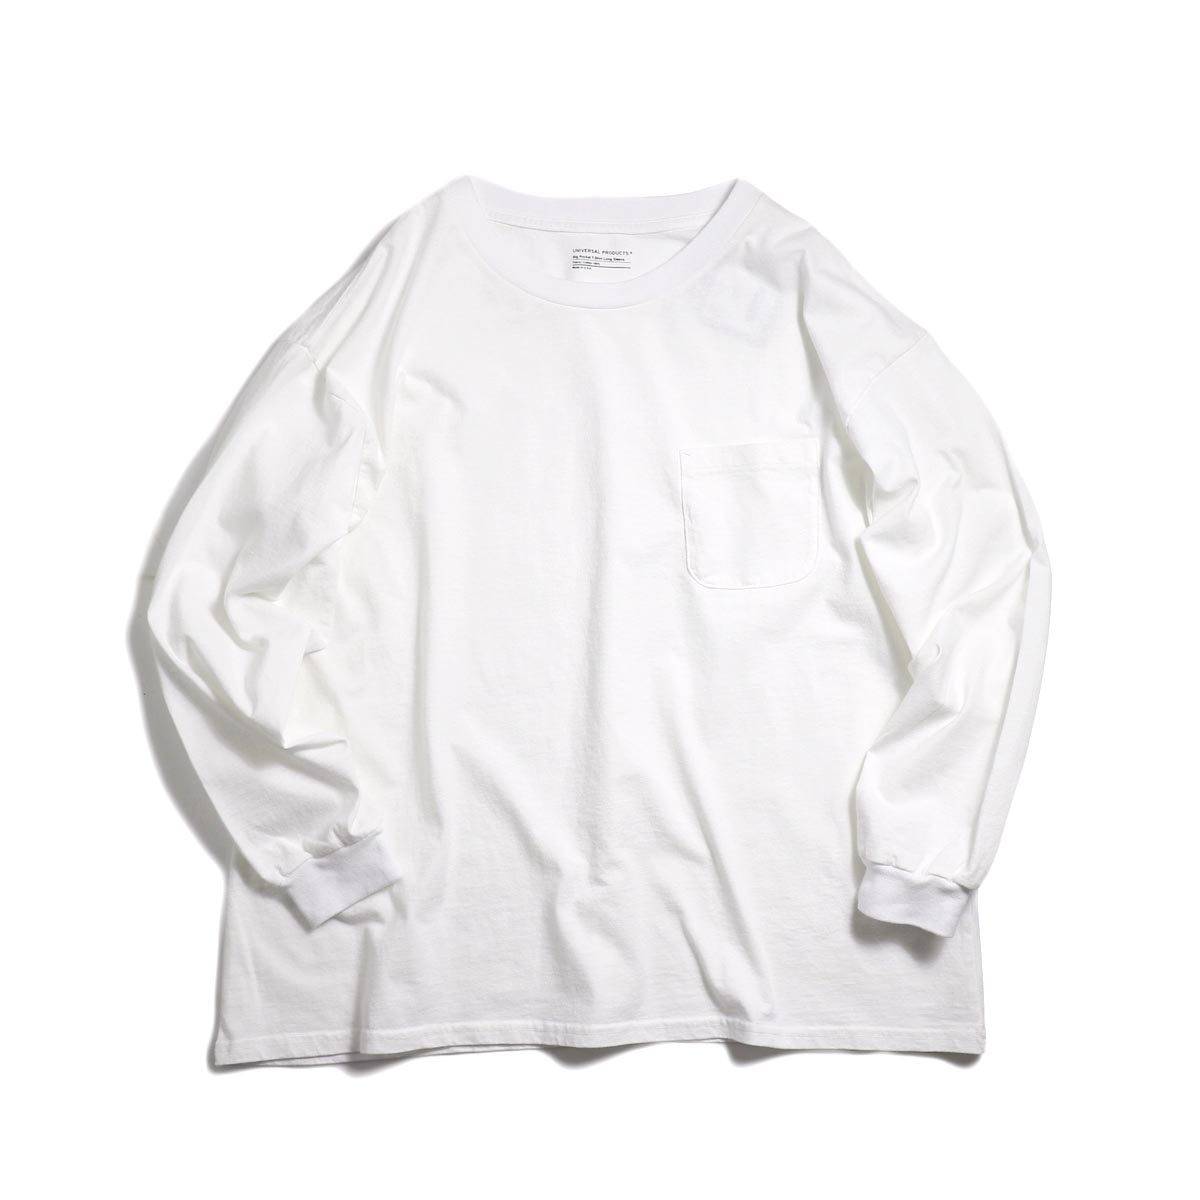 UNIVERSAL PRODUCTS / Heavy Weight L/S T-Shirt -White